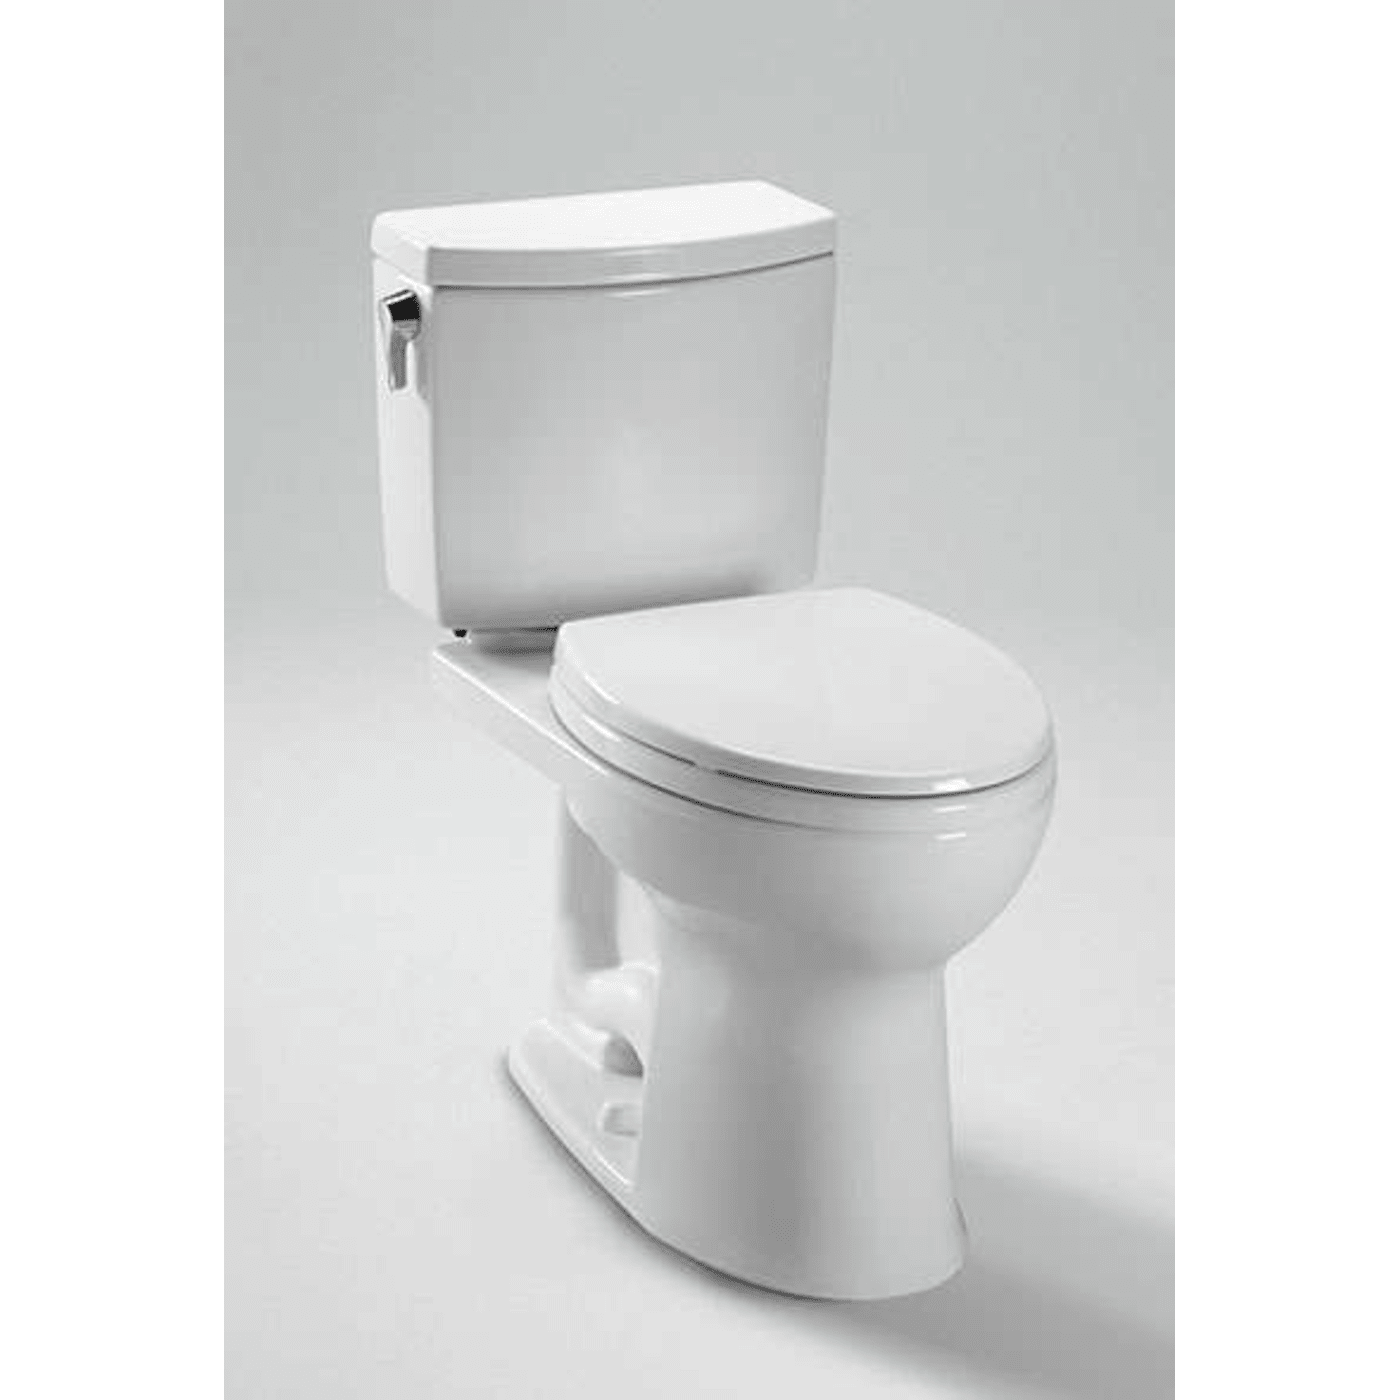 Toto Drake Toilet Tank ST453U#01 Cotton White - Goedekers.com